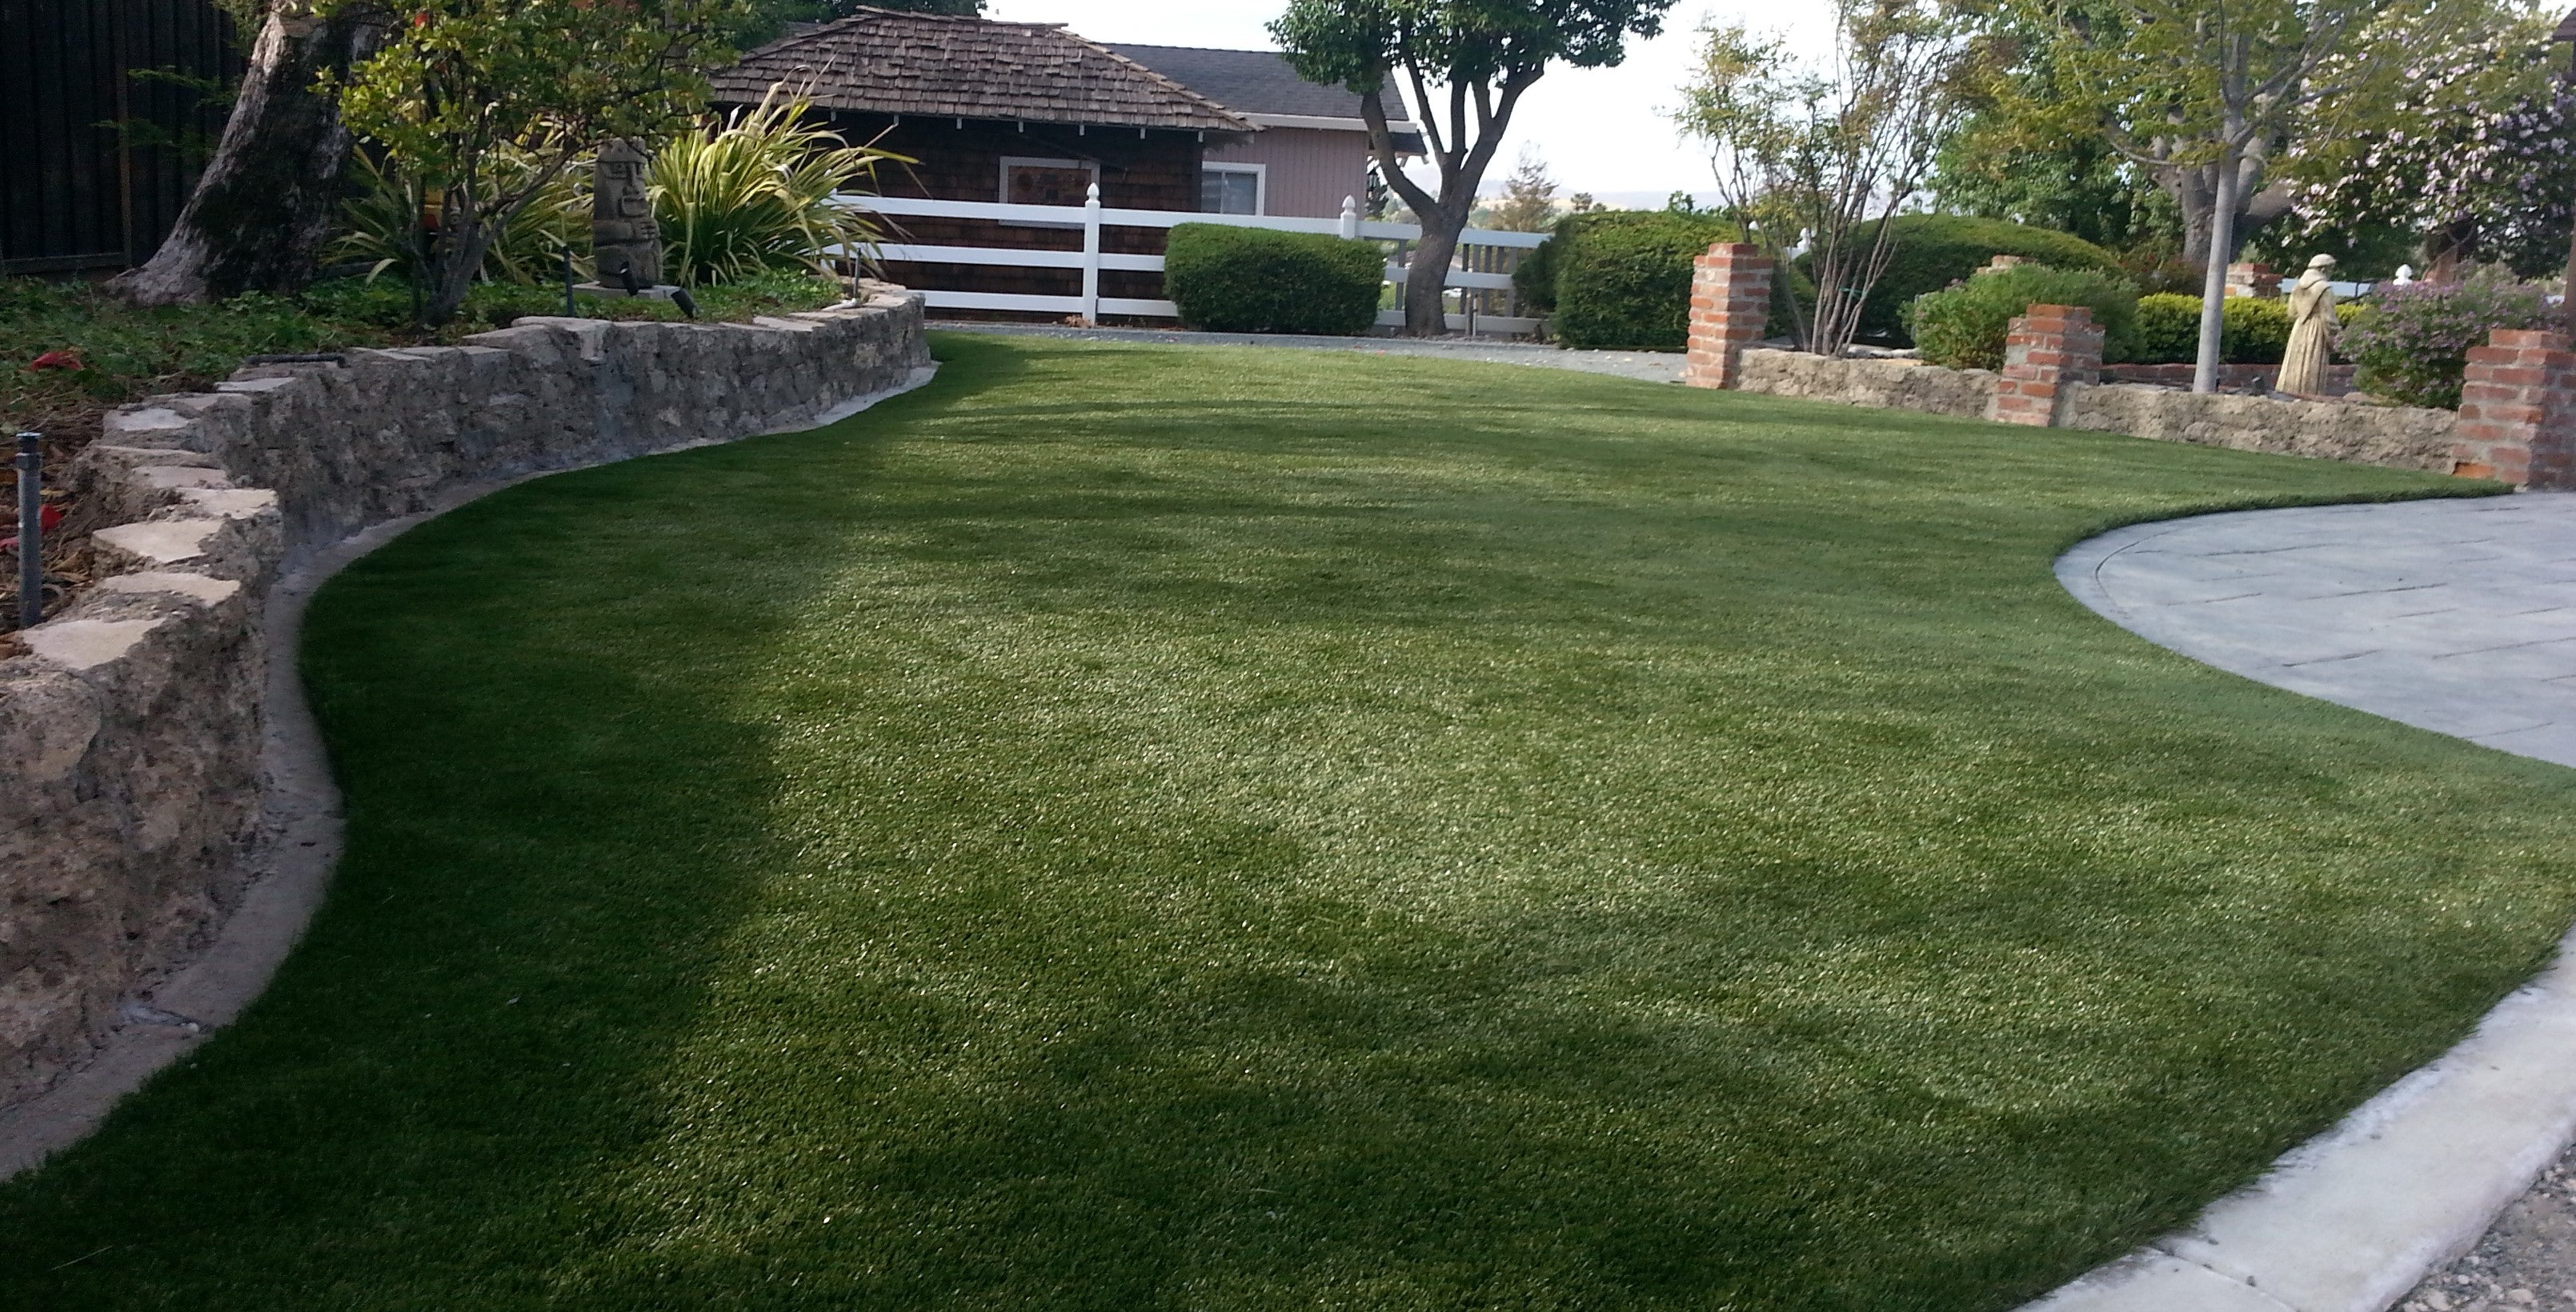 Turf installed between a stone wall and a driveway in a client's front yard.